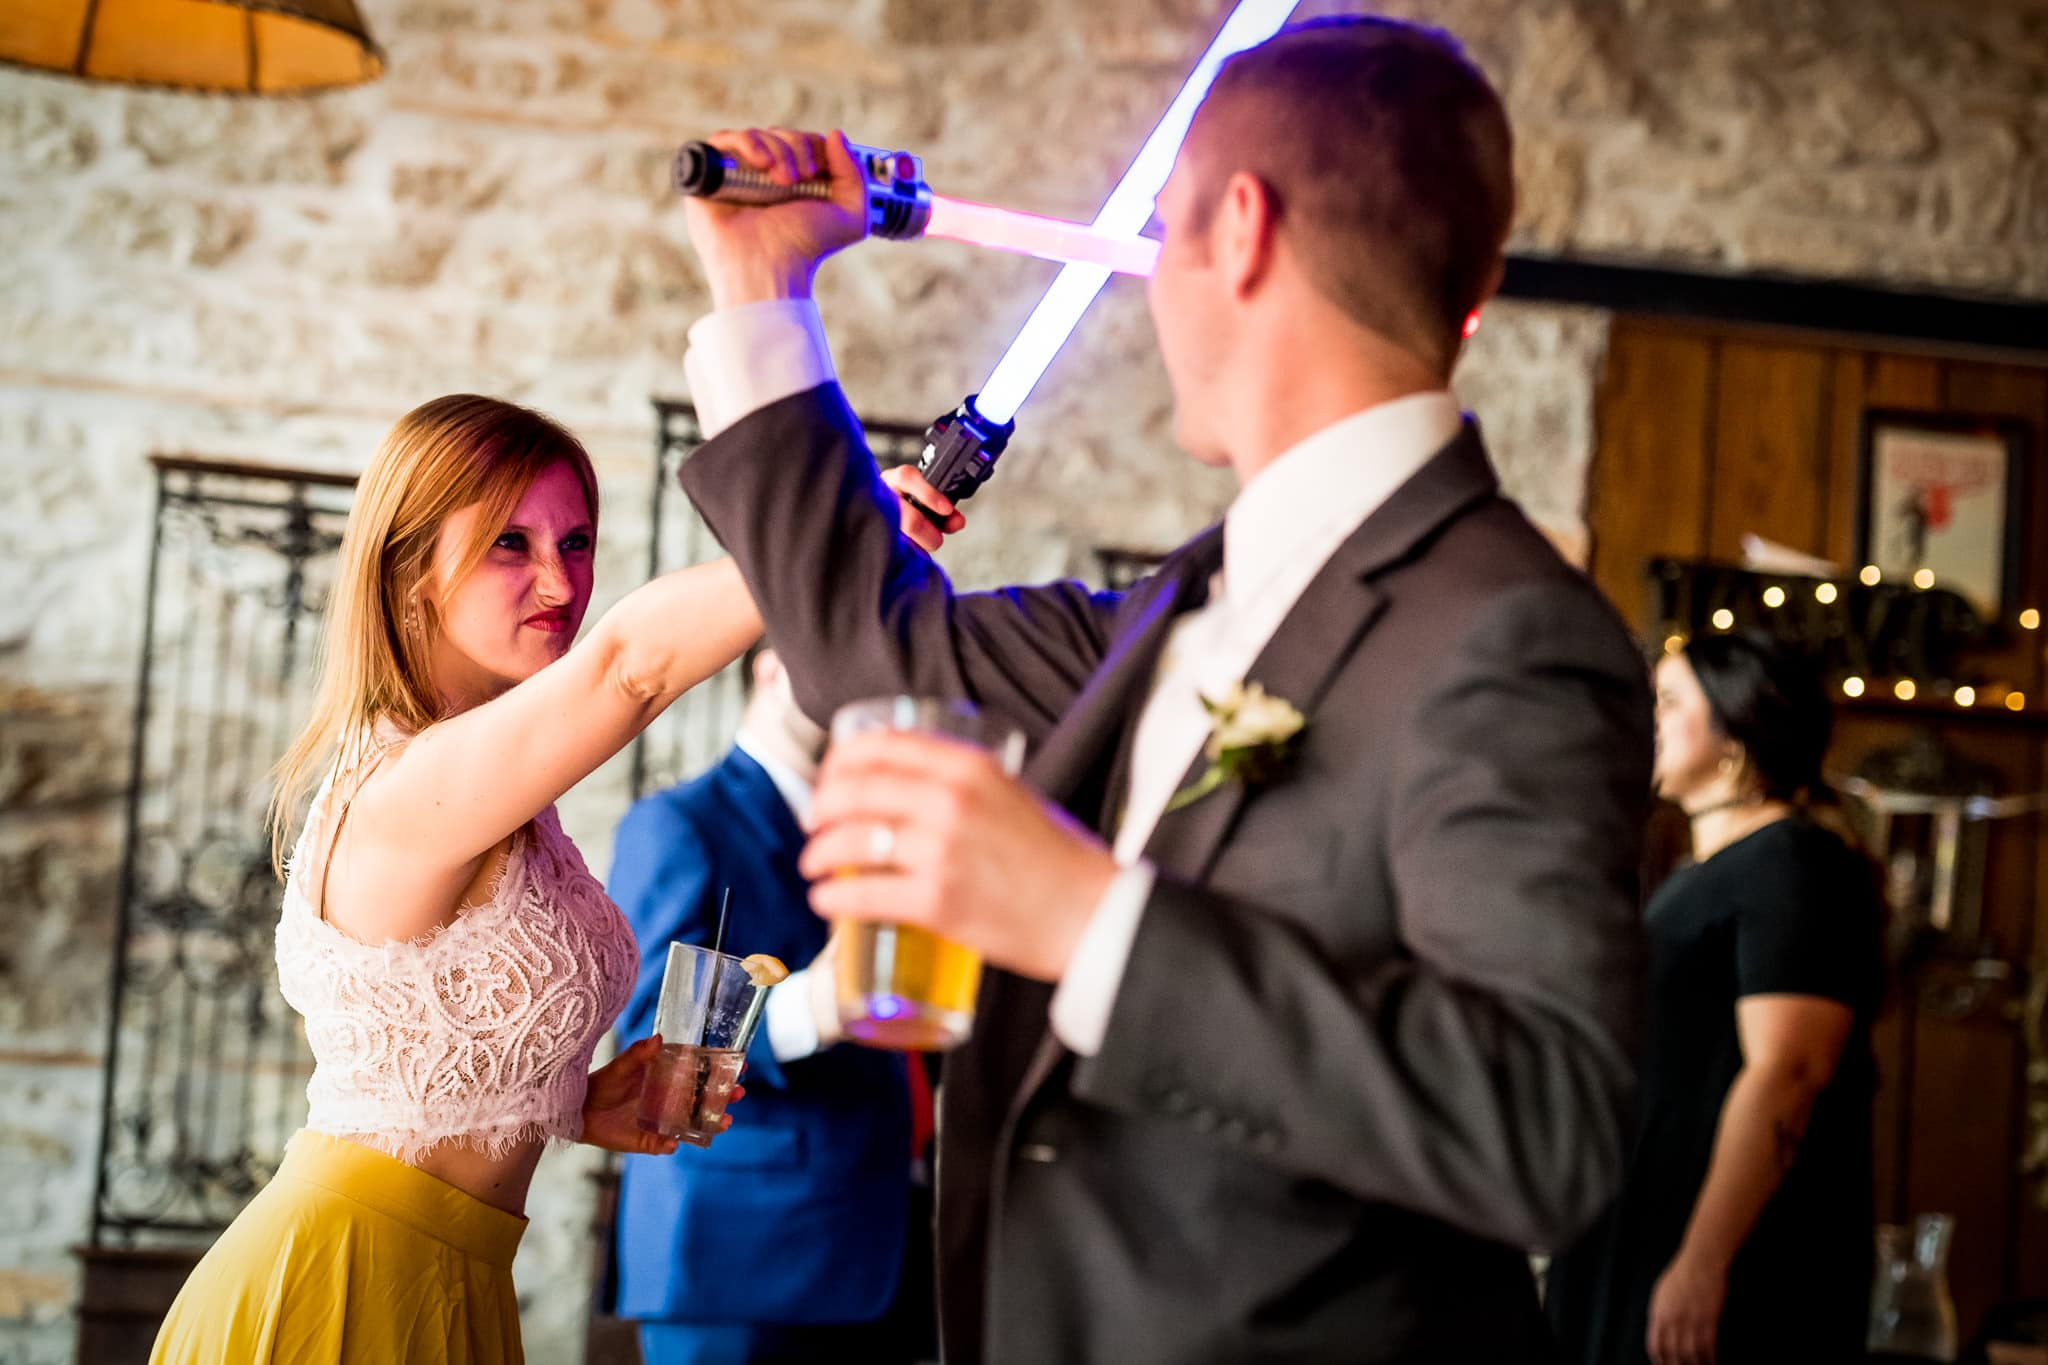 Star Wars Light Saber battle during the wedding reception in the River Room at Aster Cafe 1